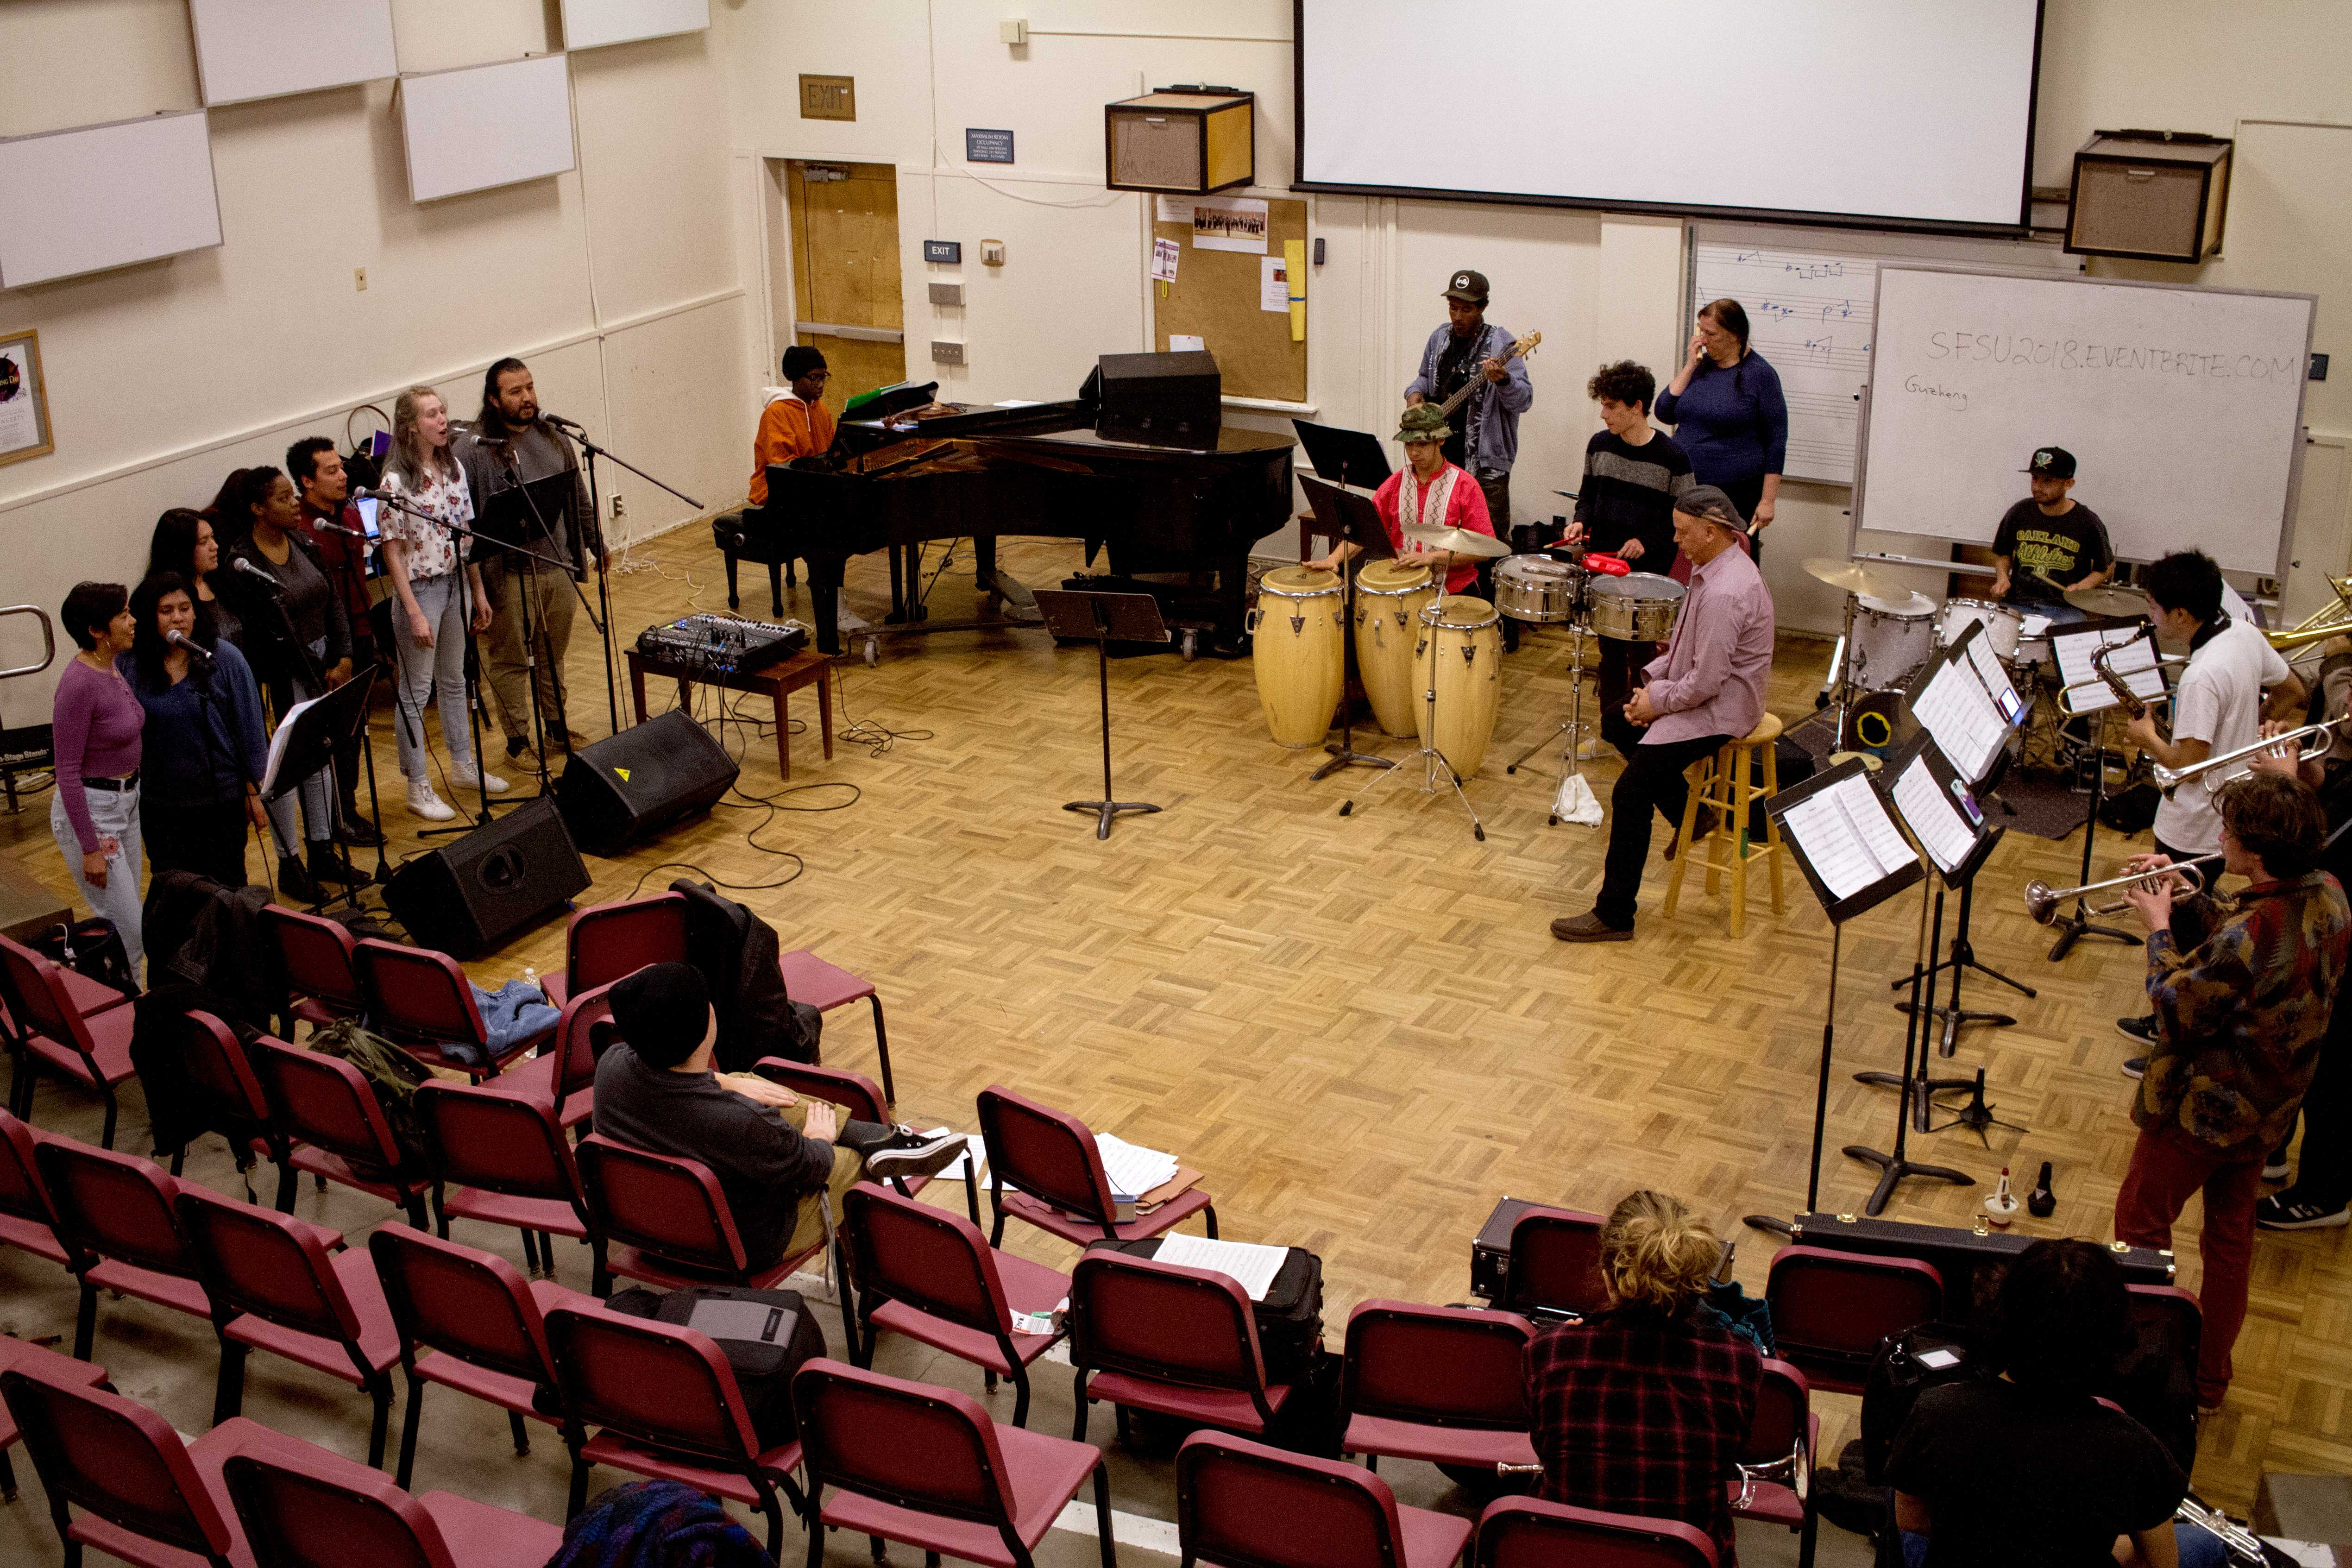 The SF State Afro-Cuban Ensemble works through a song together at their rehearsal at SF State on Wednesday, Feb. 21, 2018.